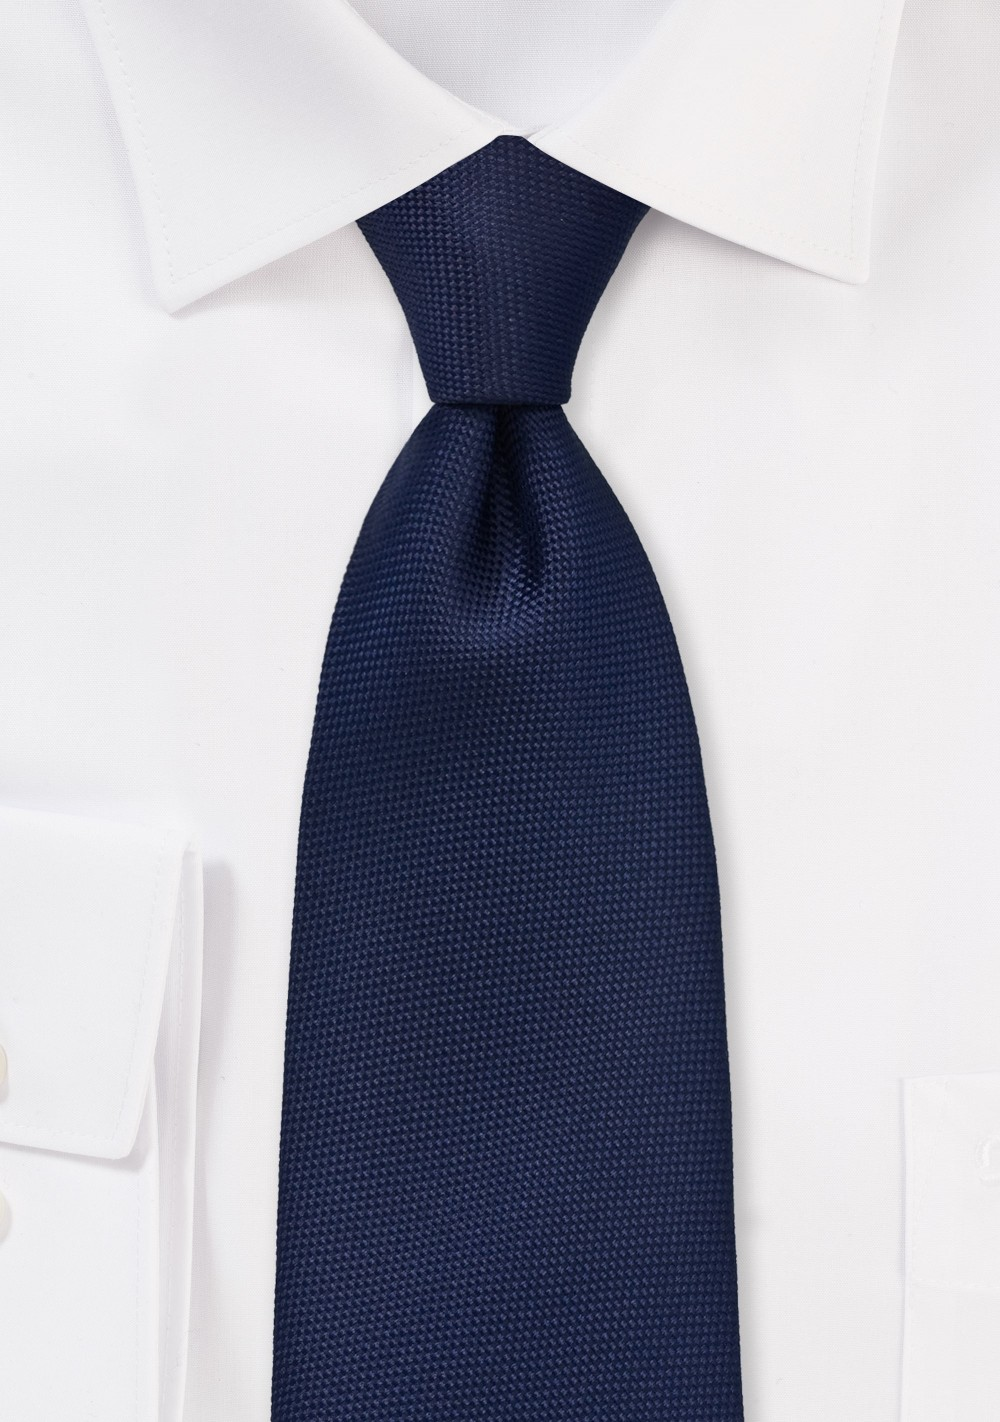 Diamond Embroidered Kids Tie in Dark Navy